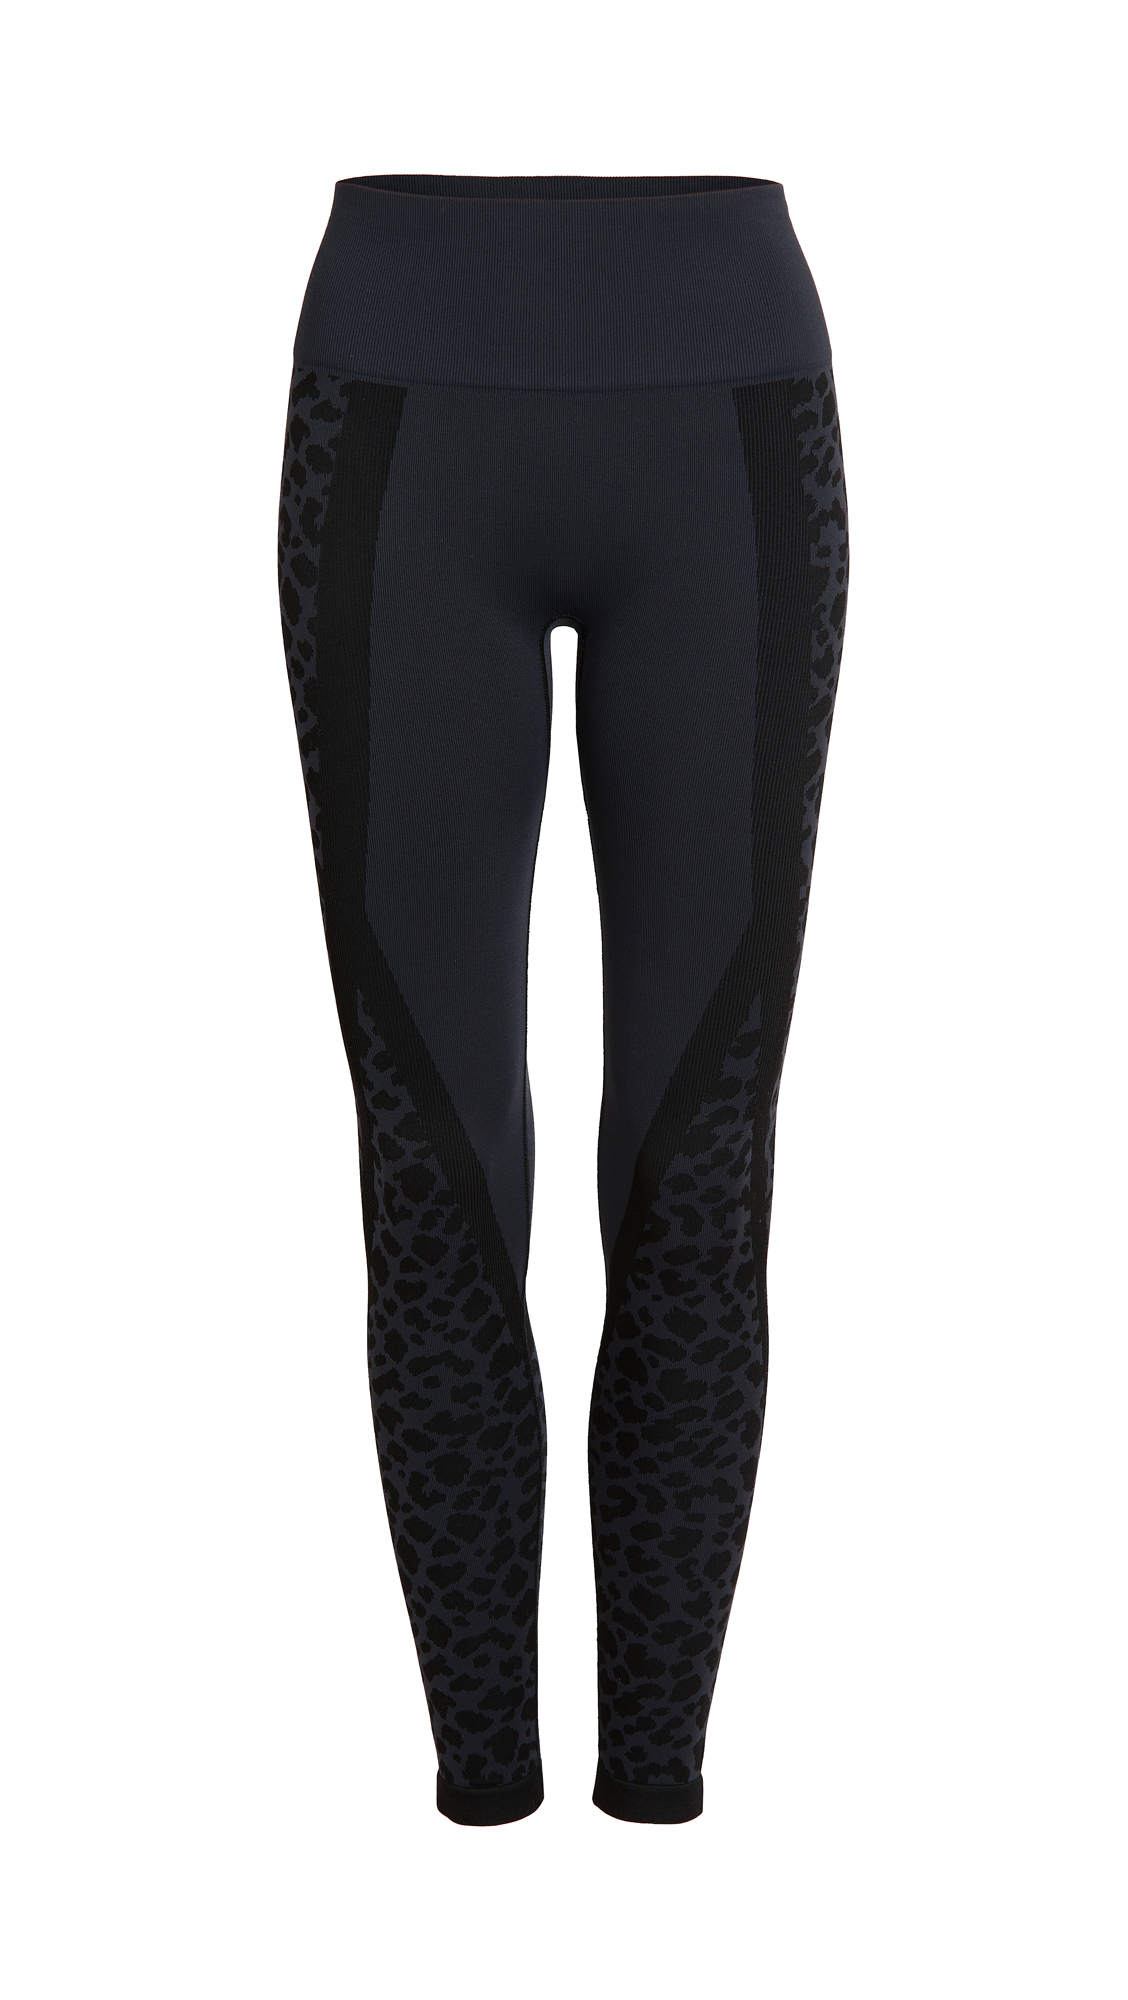 KORAL ACTIVEWEAR Calca Seamless Leggings